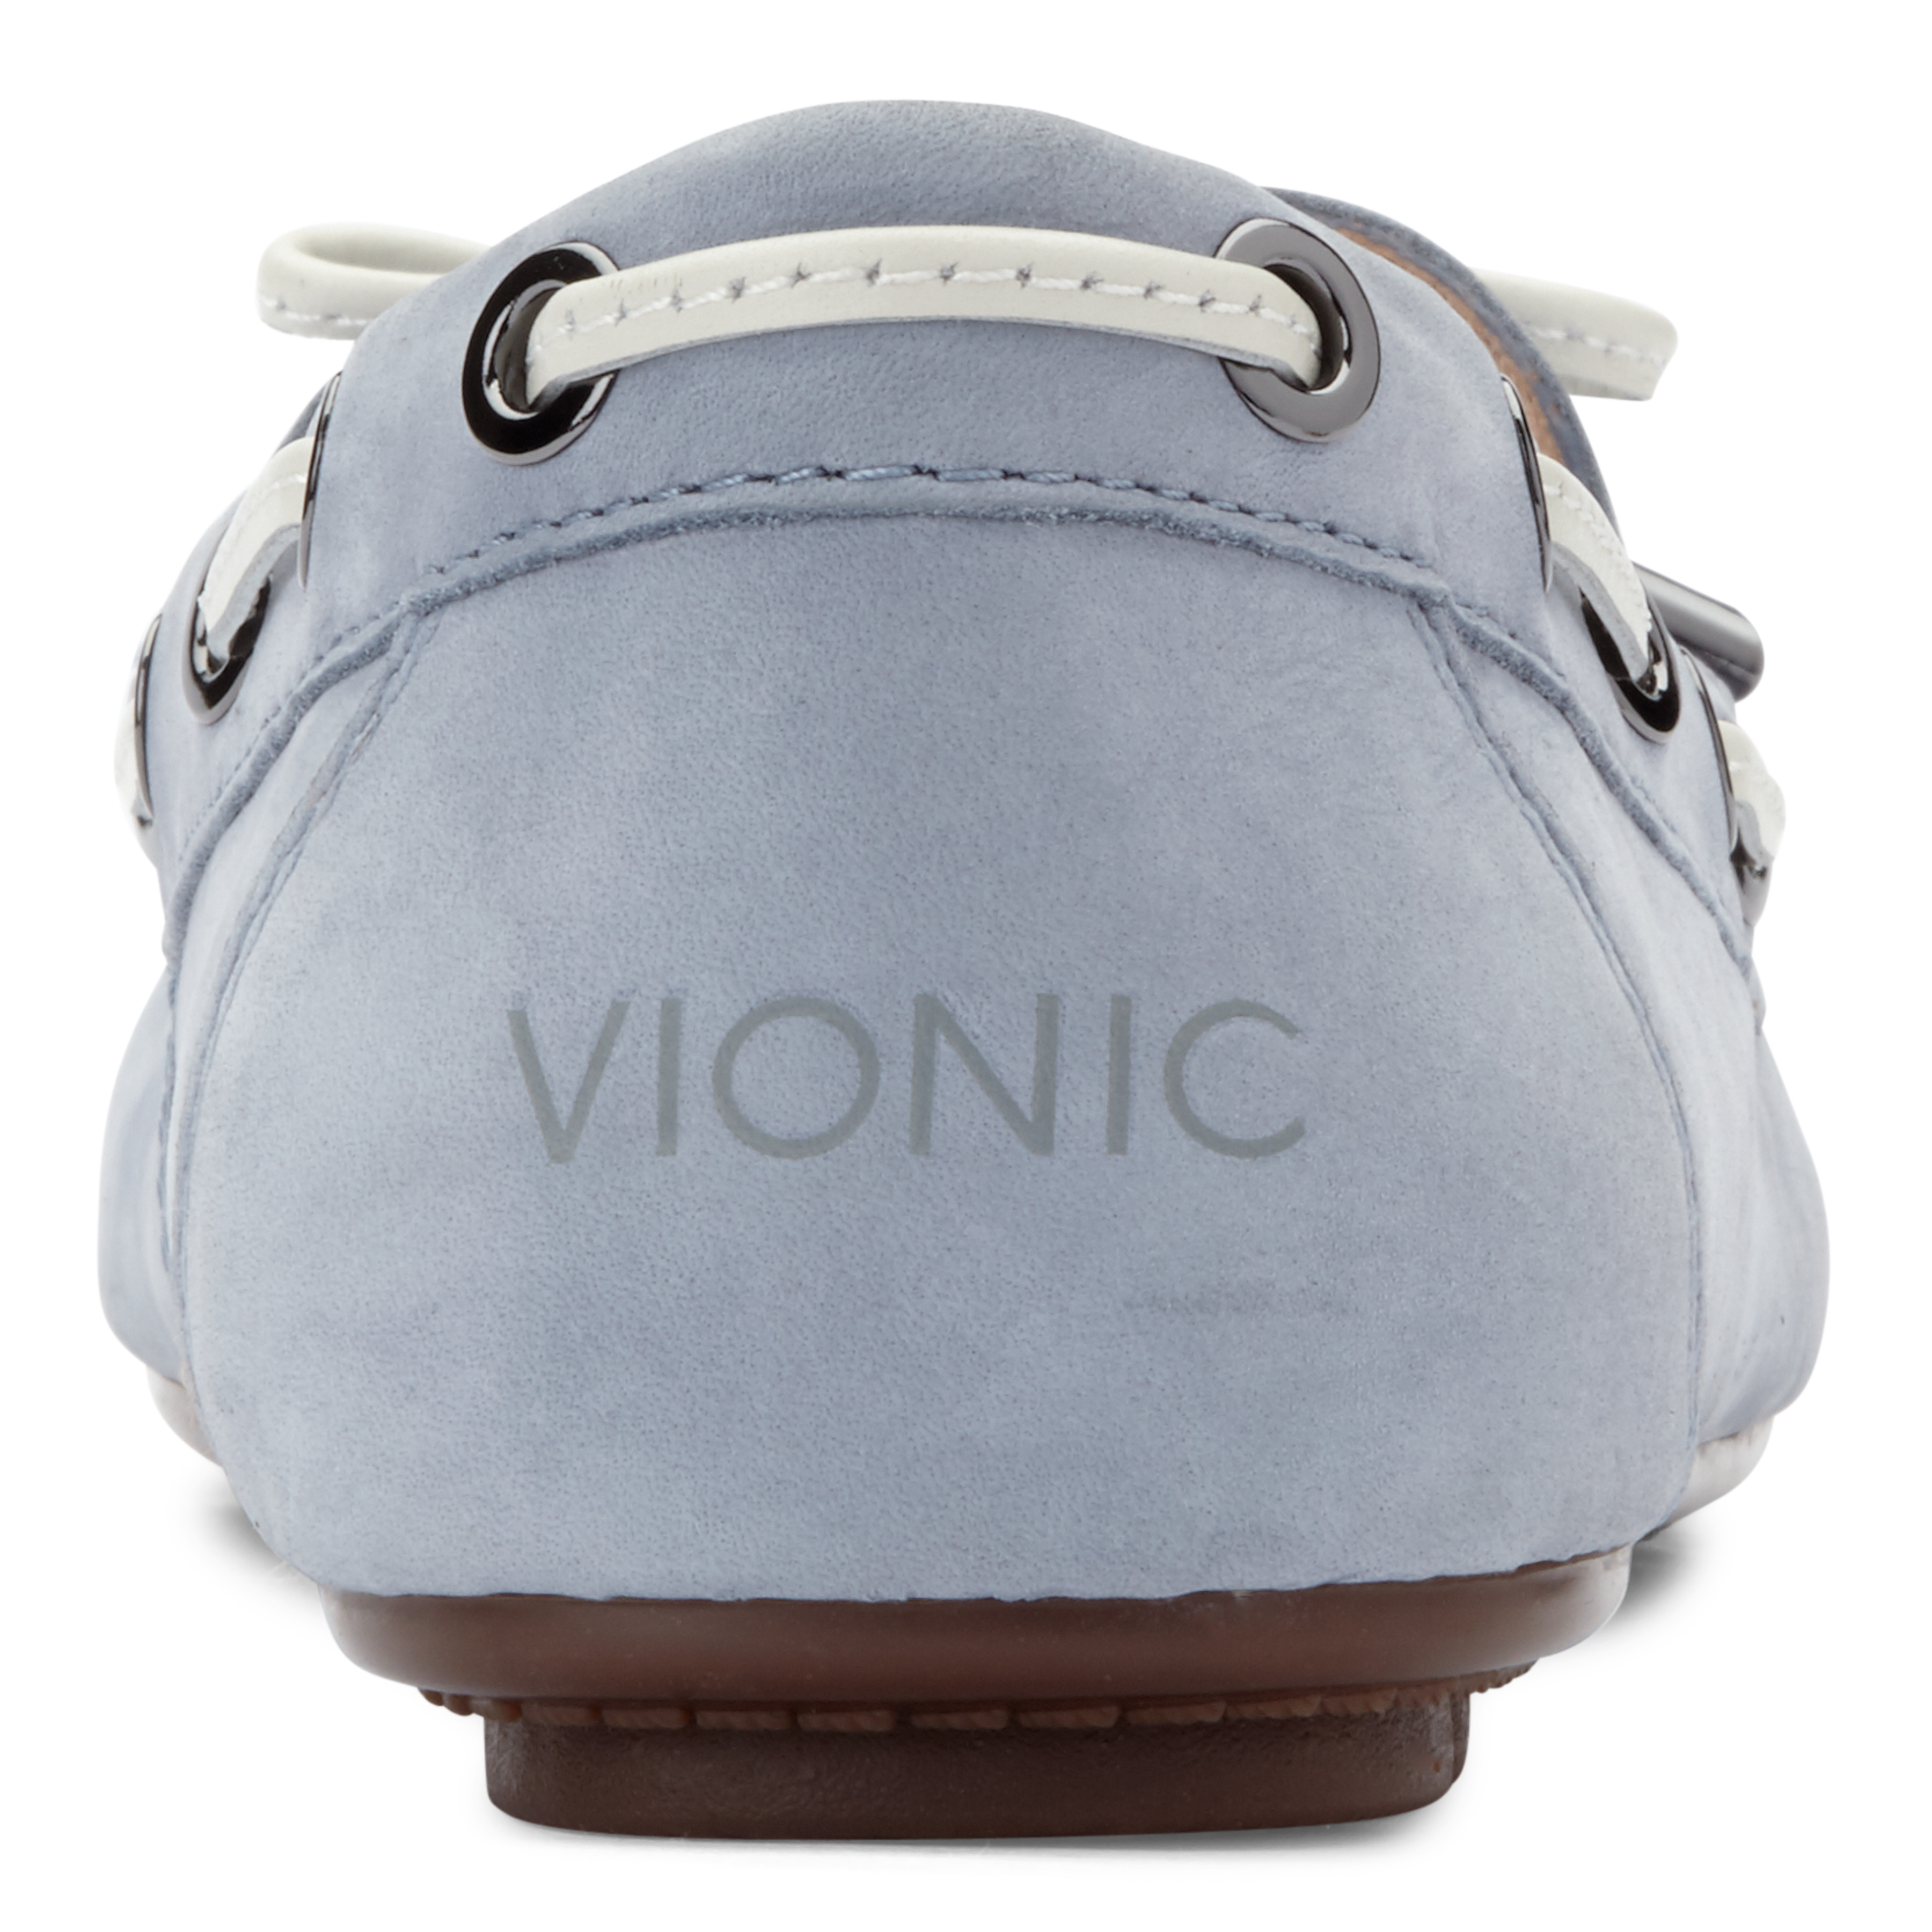 Vionic-Womens-Honor-Virginia-Leather-Moccasin-Comfort-Loafers thumbnail 13